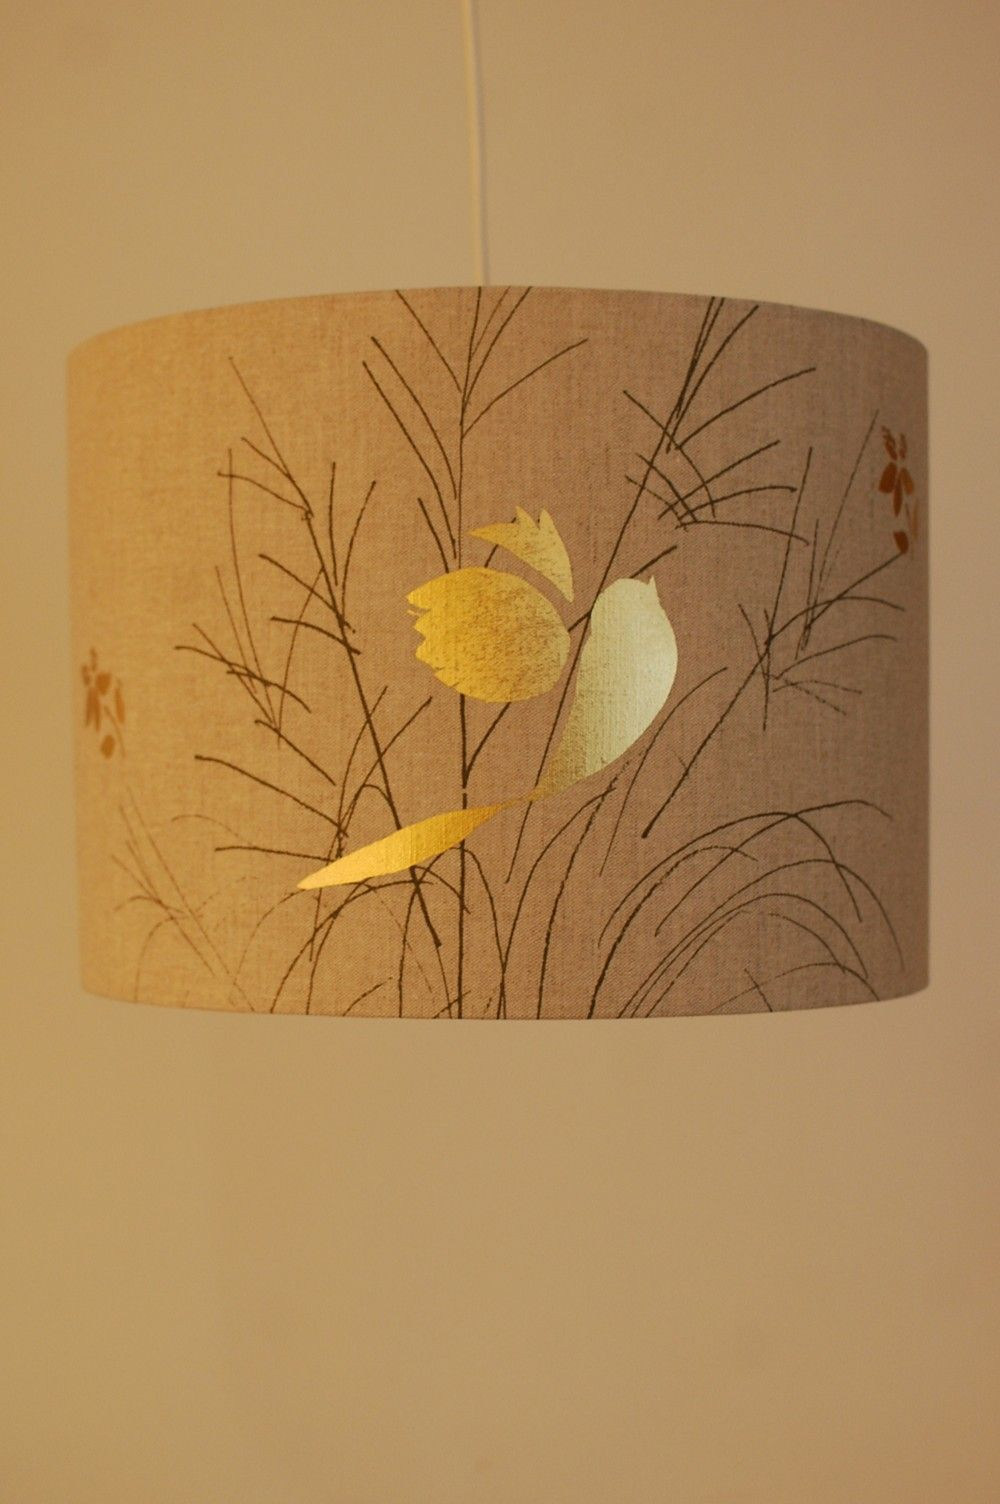 Gold bird lampshade crafts pinterest lampshades master gold bird lampshade mozeypictures Choice Image